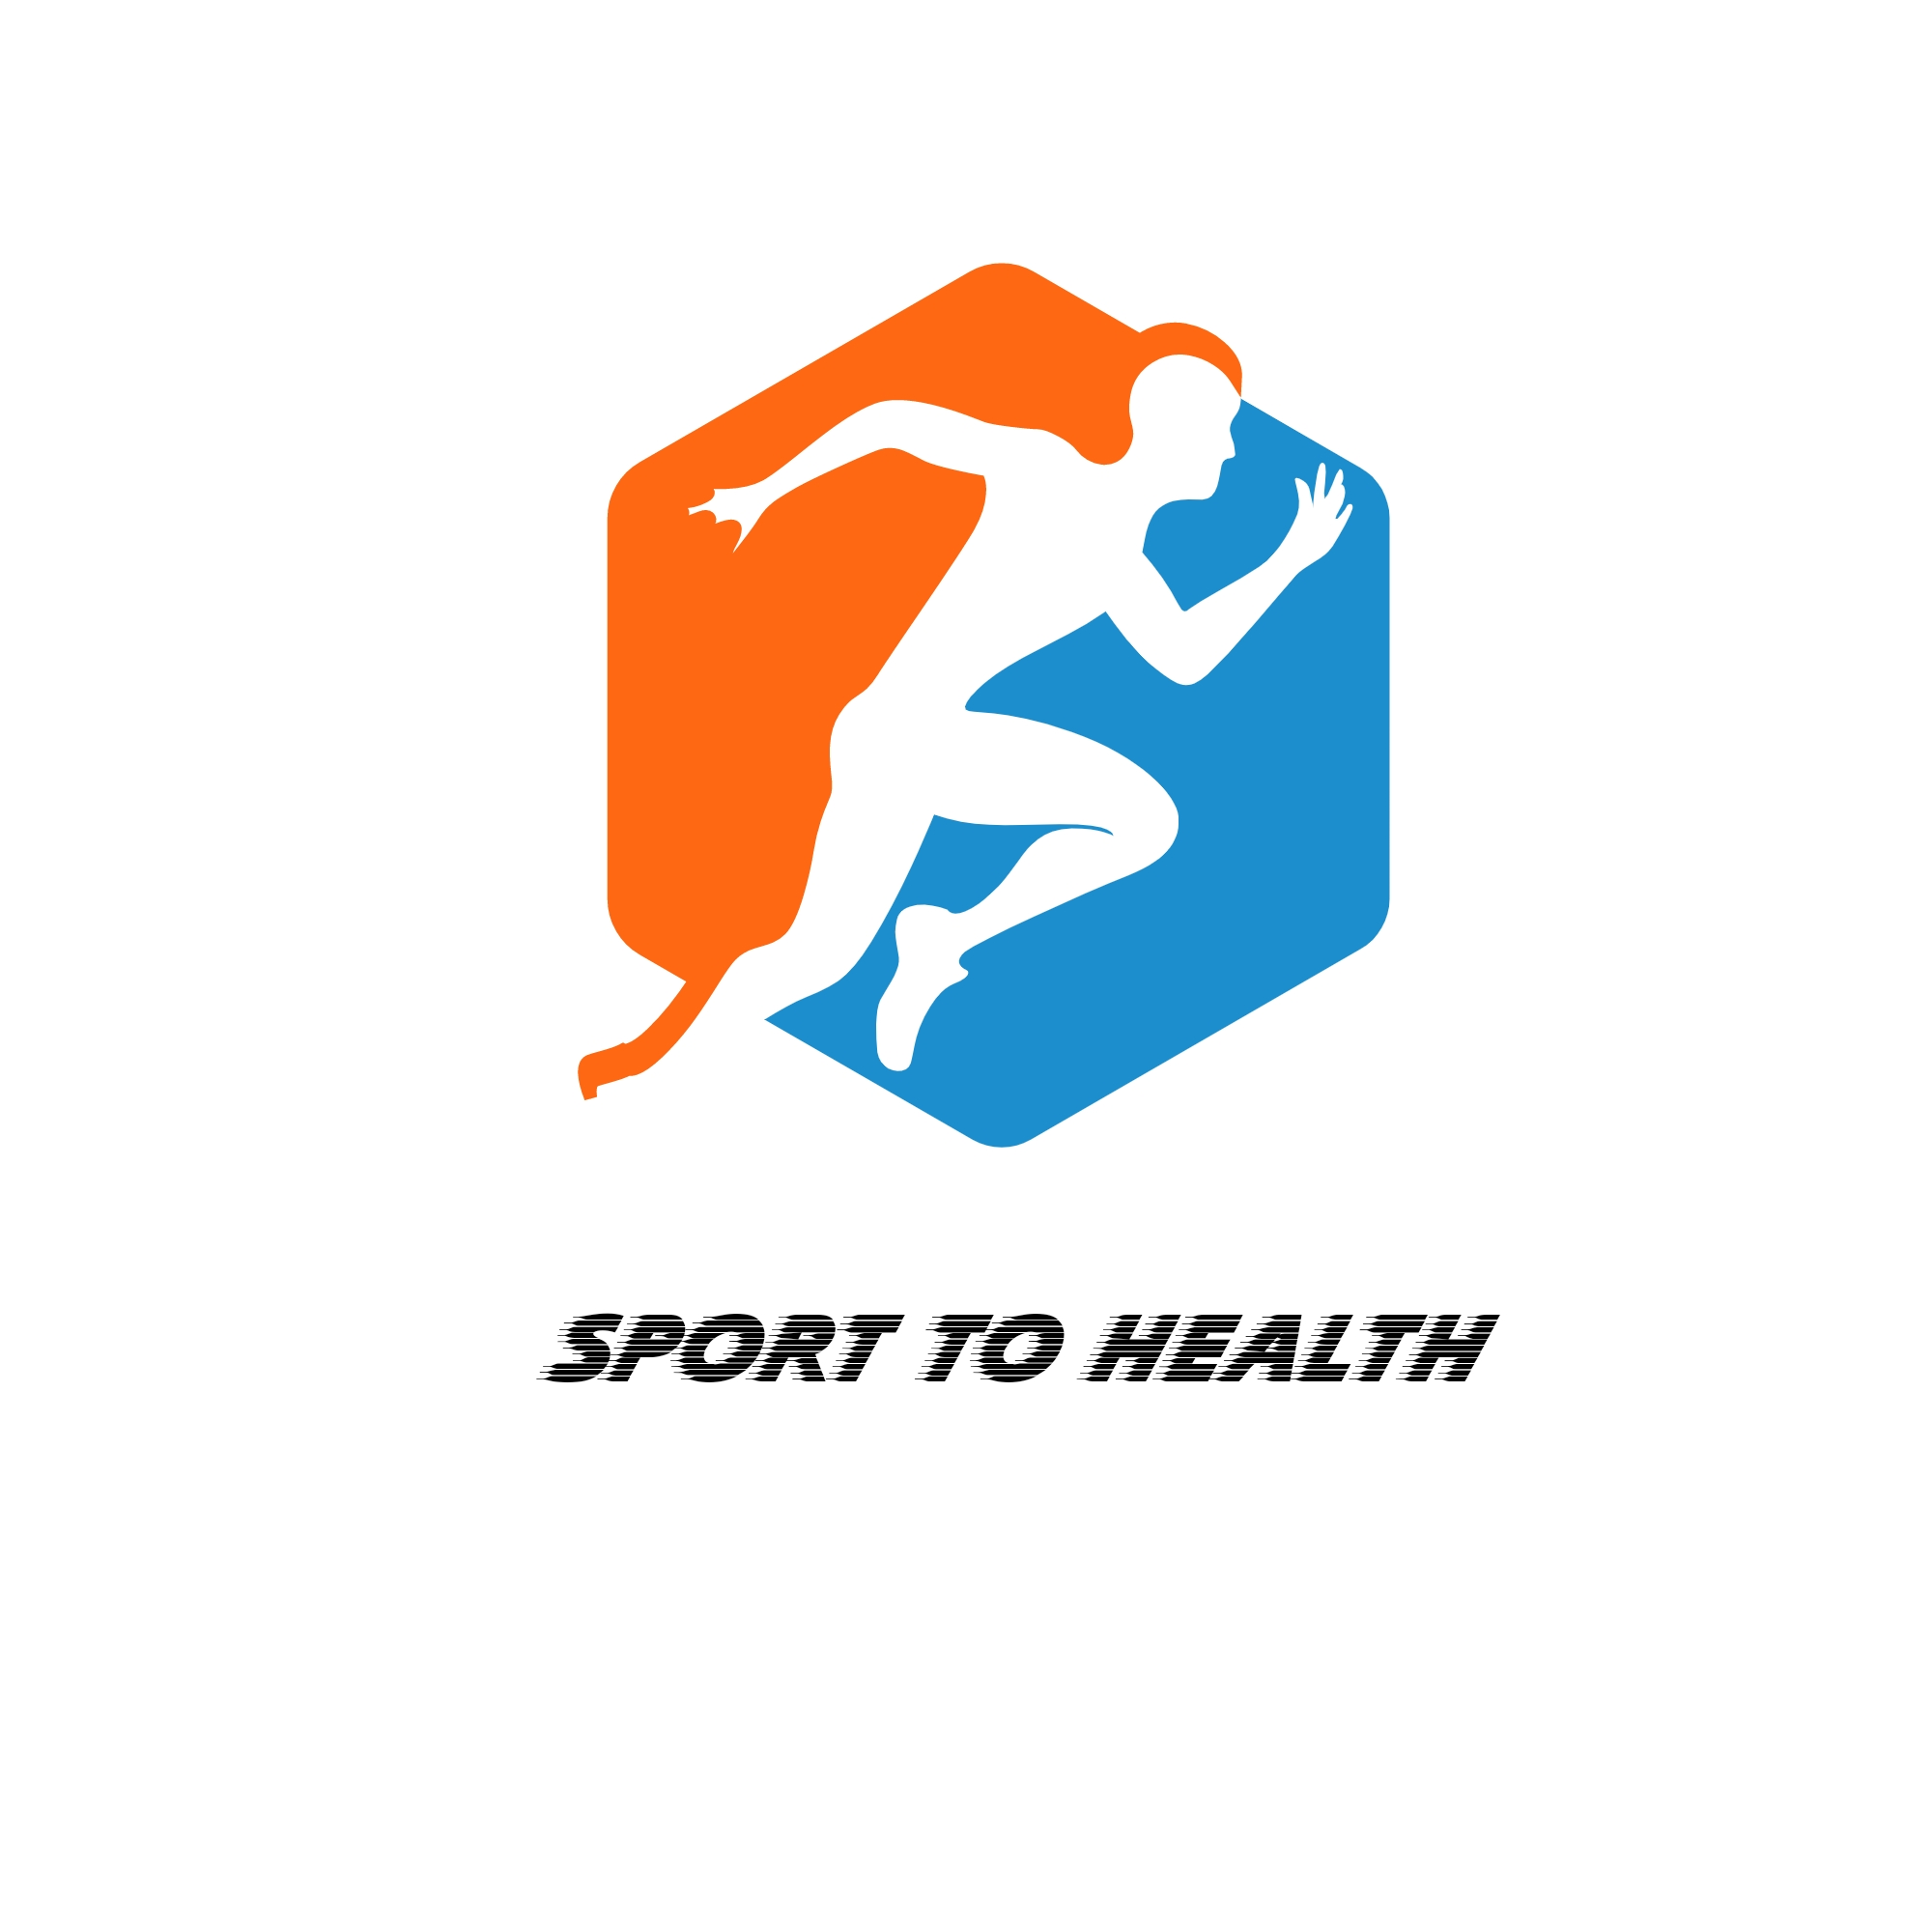 SPORT TO HEALTH ✔